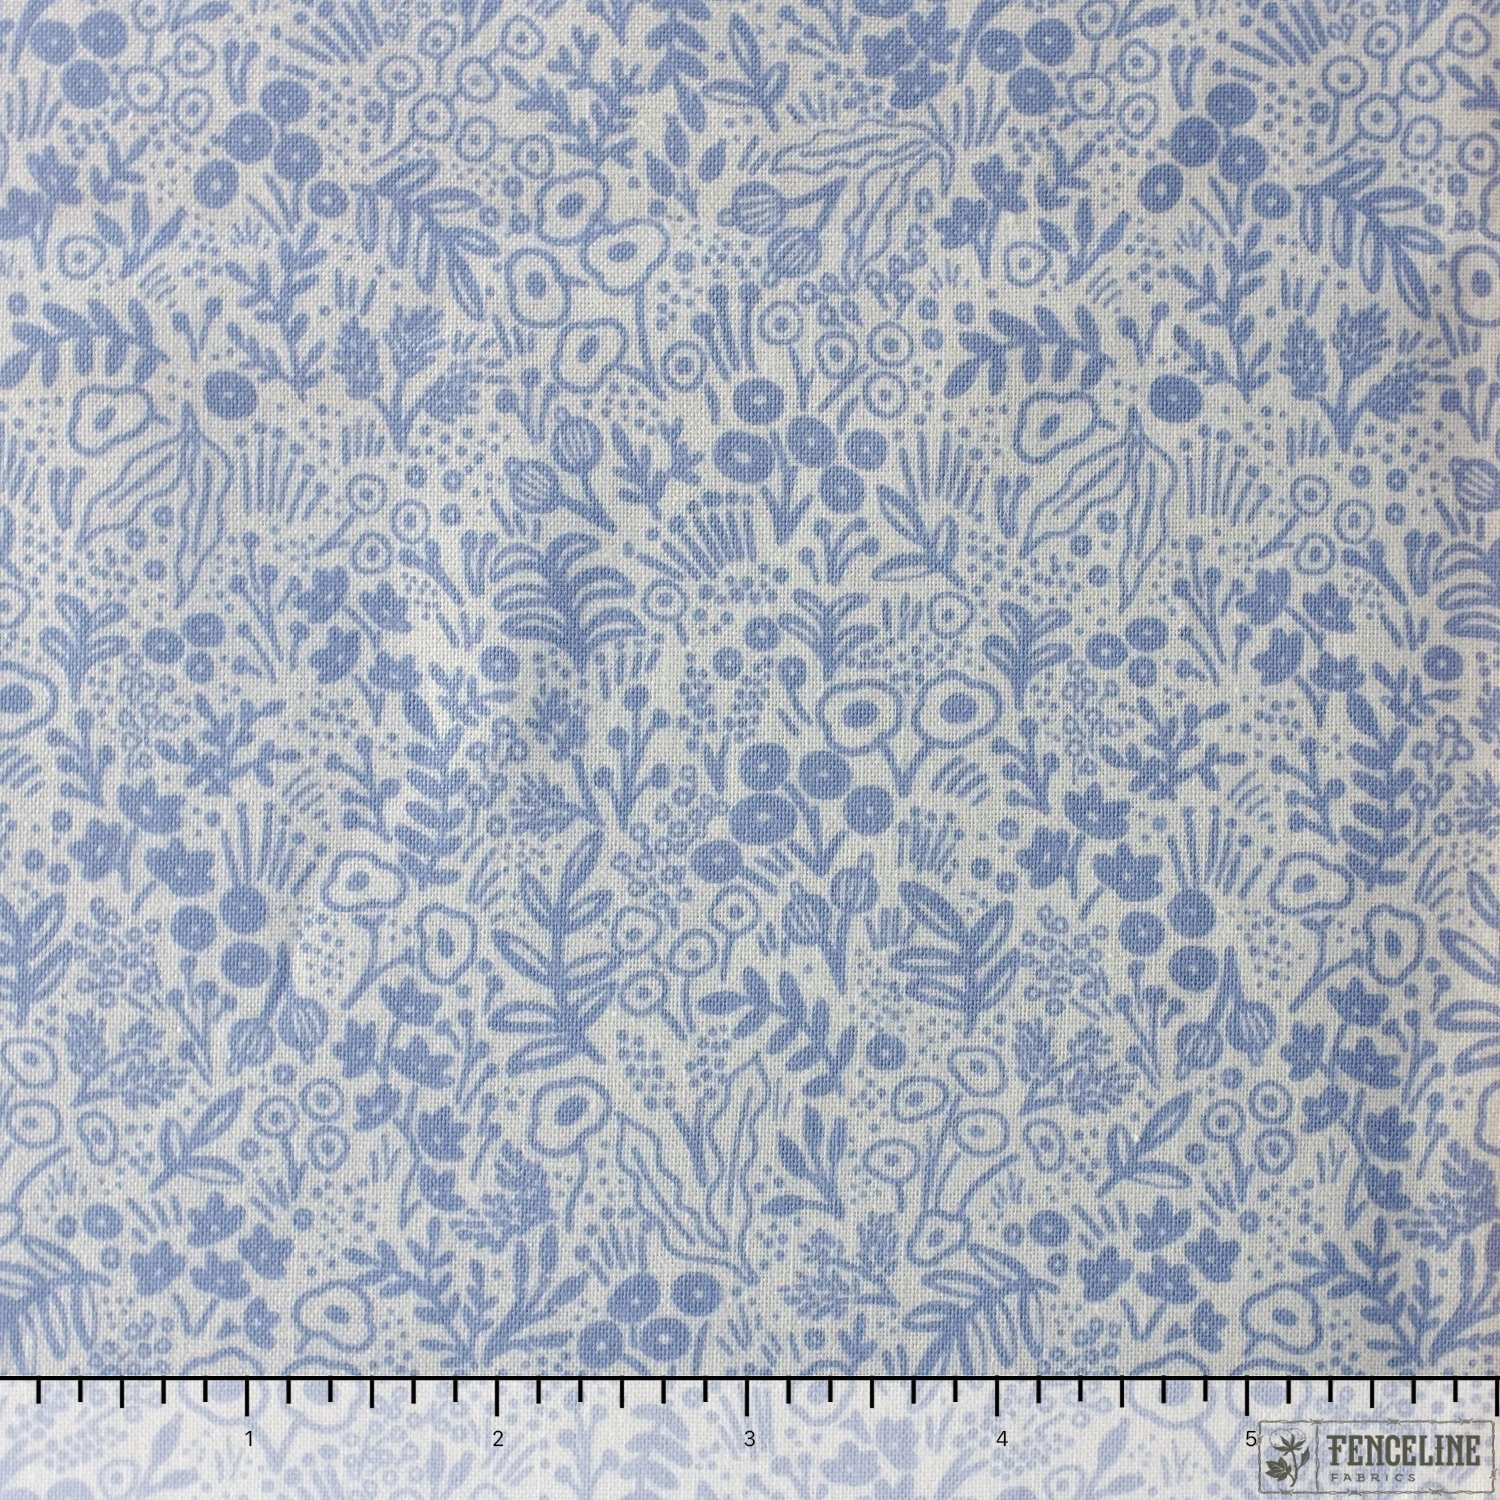 Tapestry Lace, Periwinkle, Rifle Paper Co. Basics